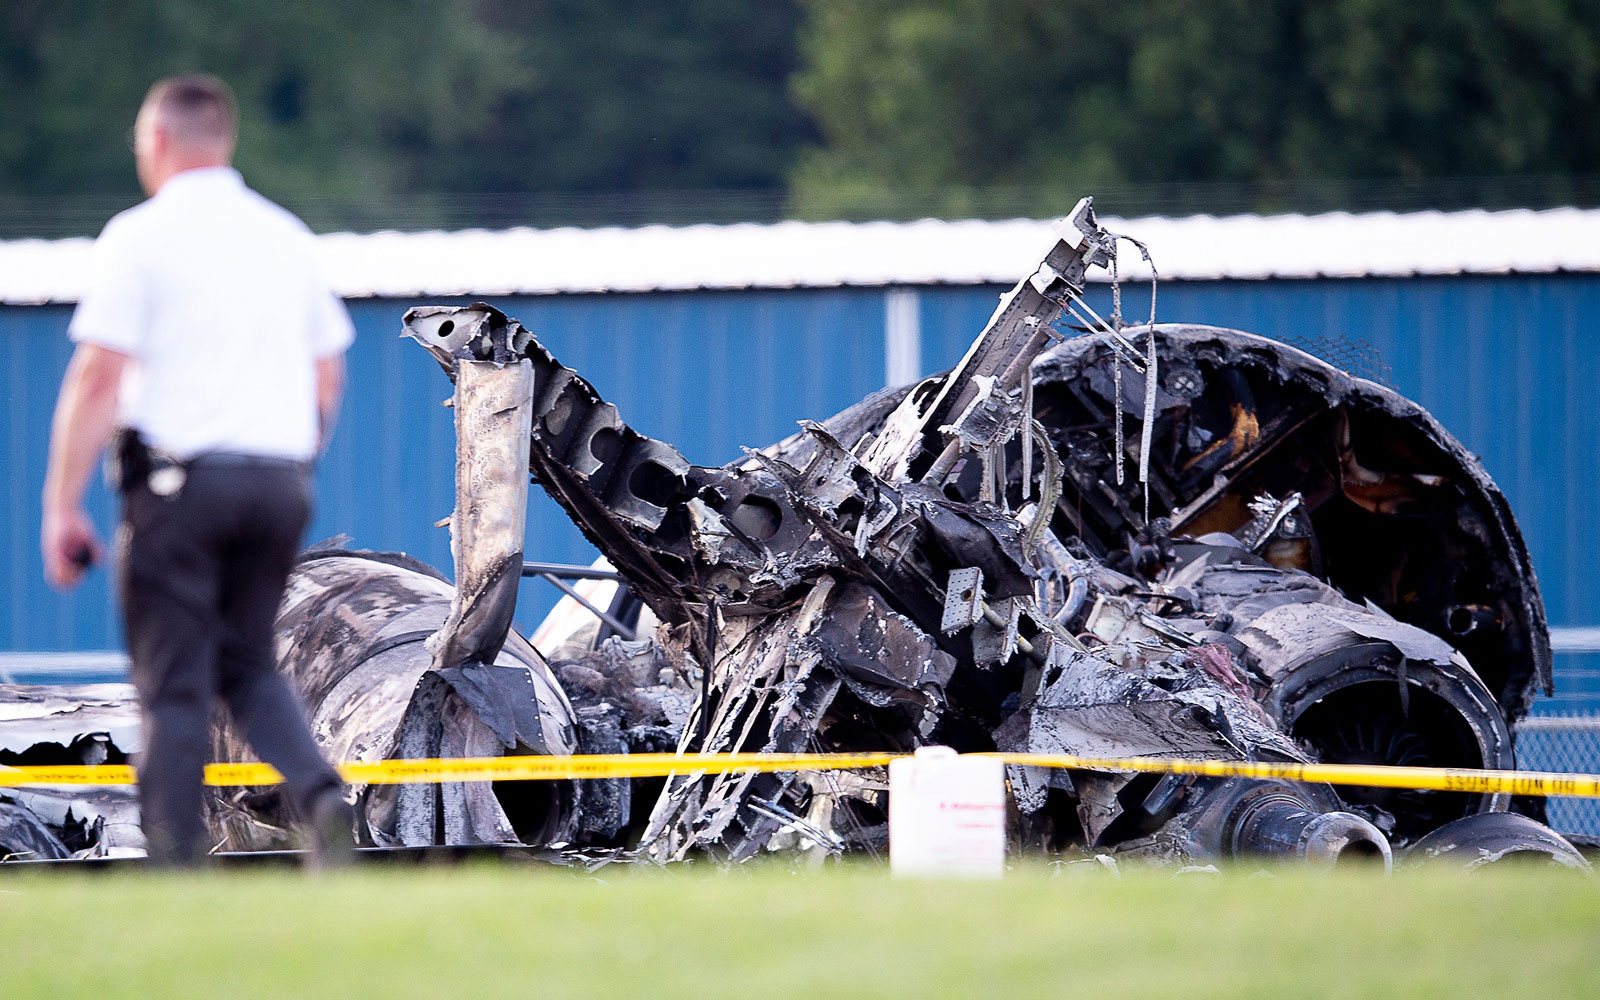 Dale Earnhardt Jr.'s Plane 'Bounced' Twice on Runway Before Crashing, NTSB Says